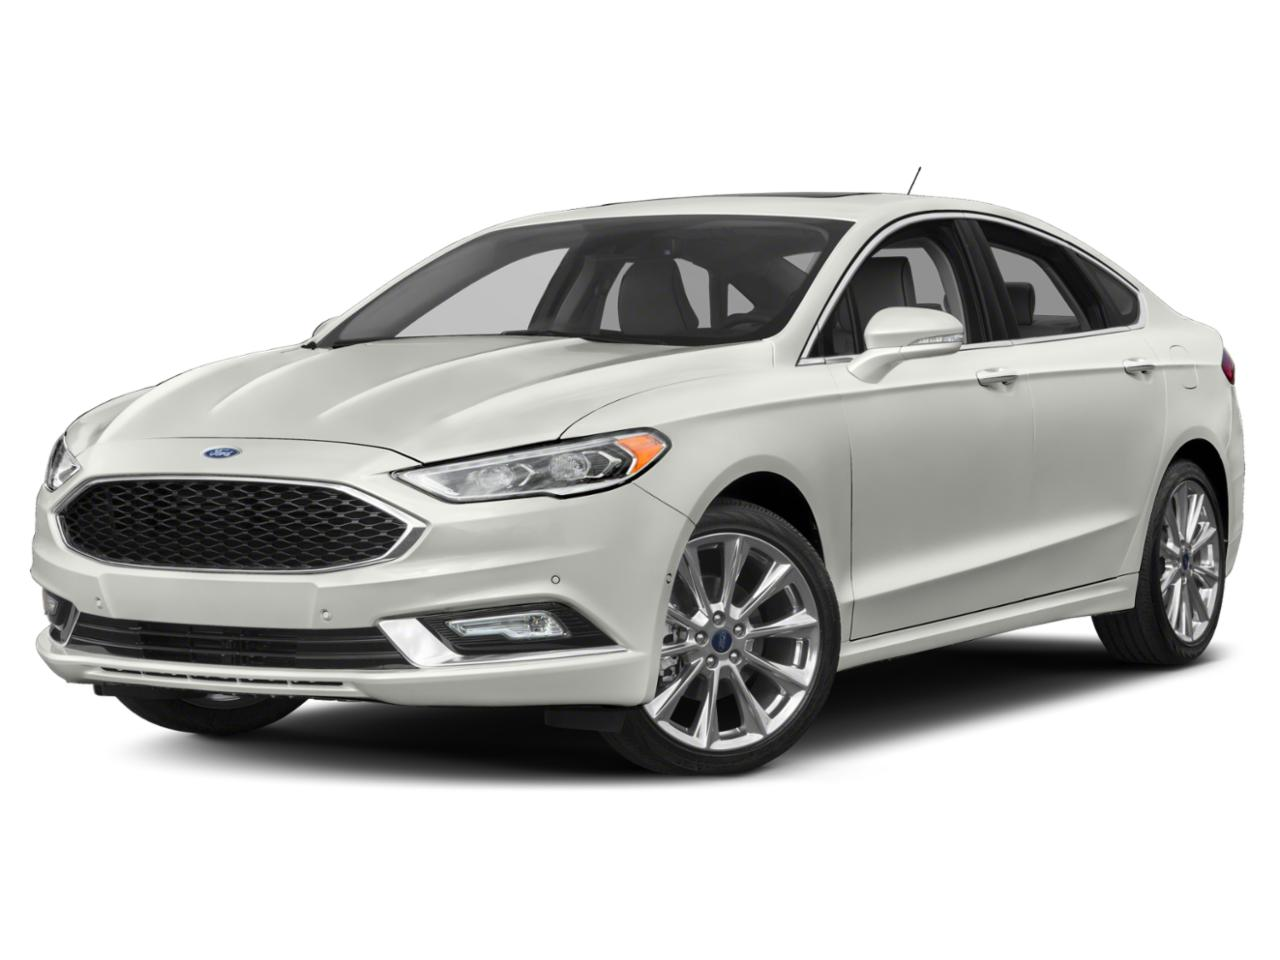 2018 Ford Fusion Vehicle Photo in Tucson, AZ 85712